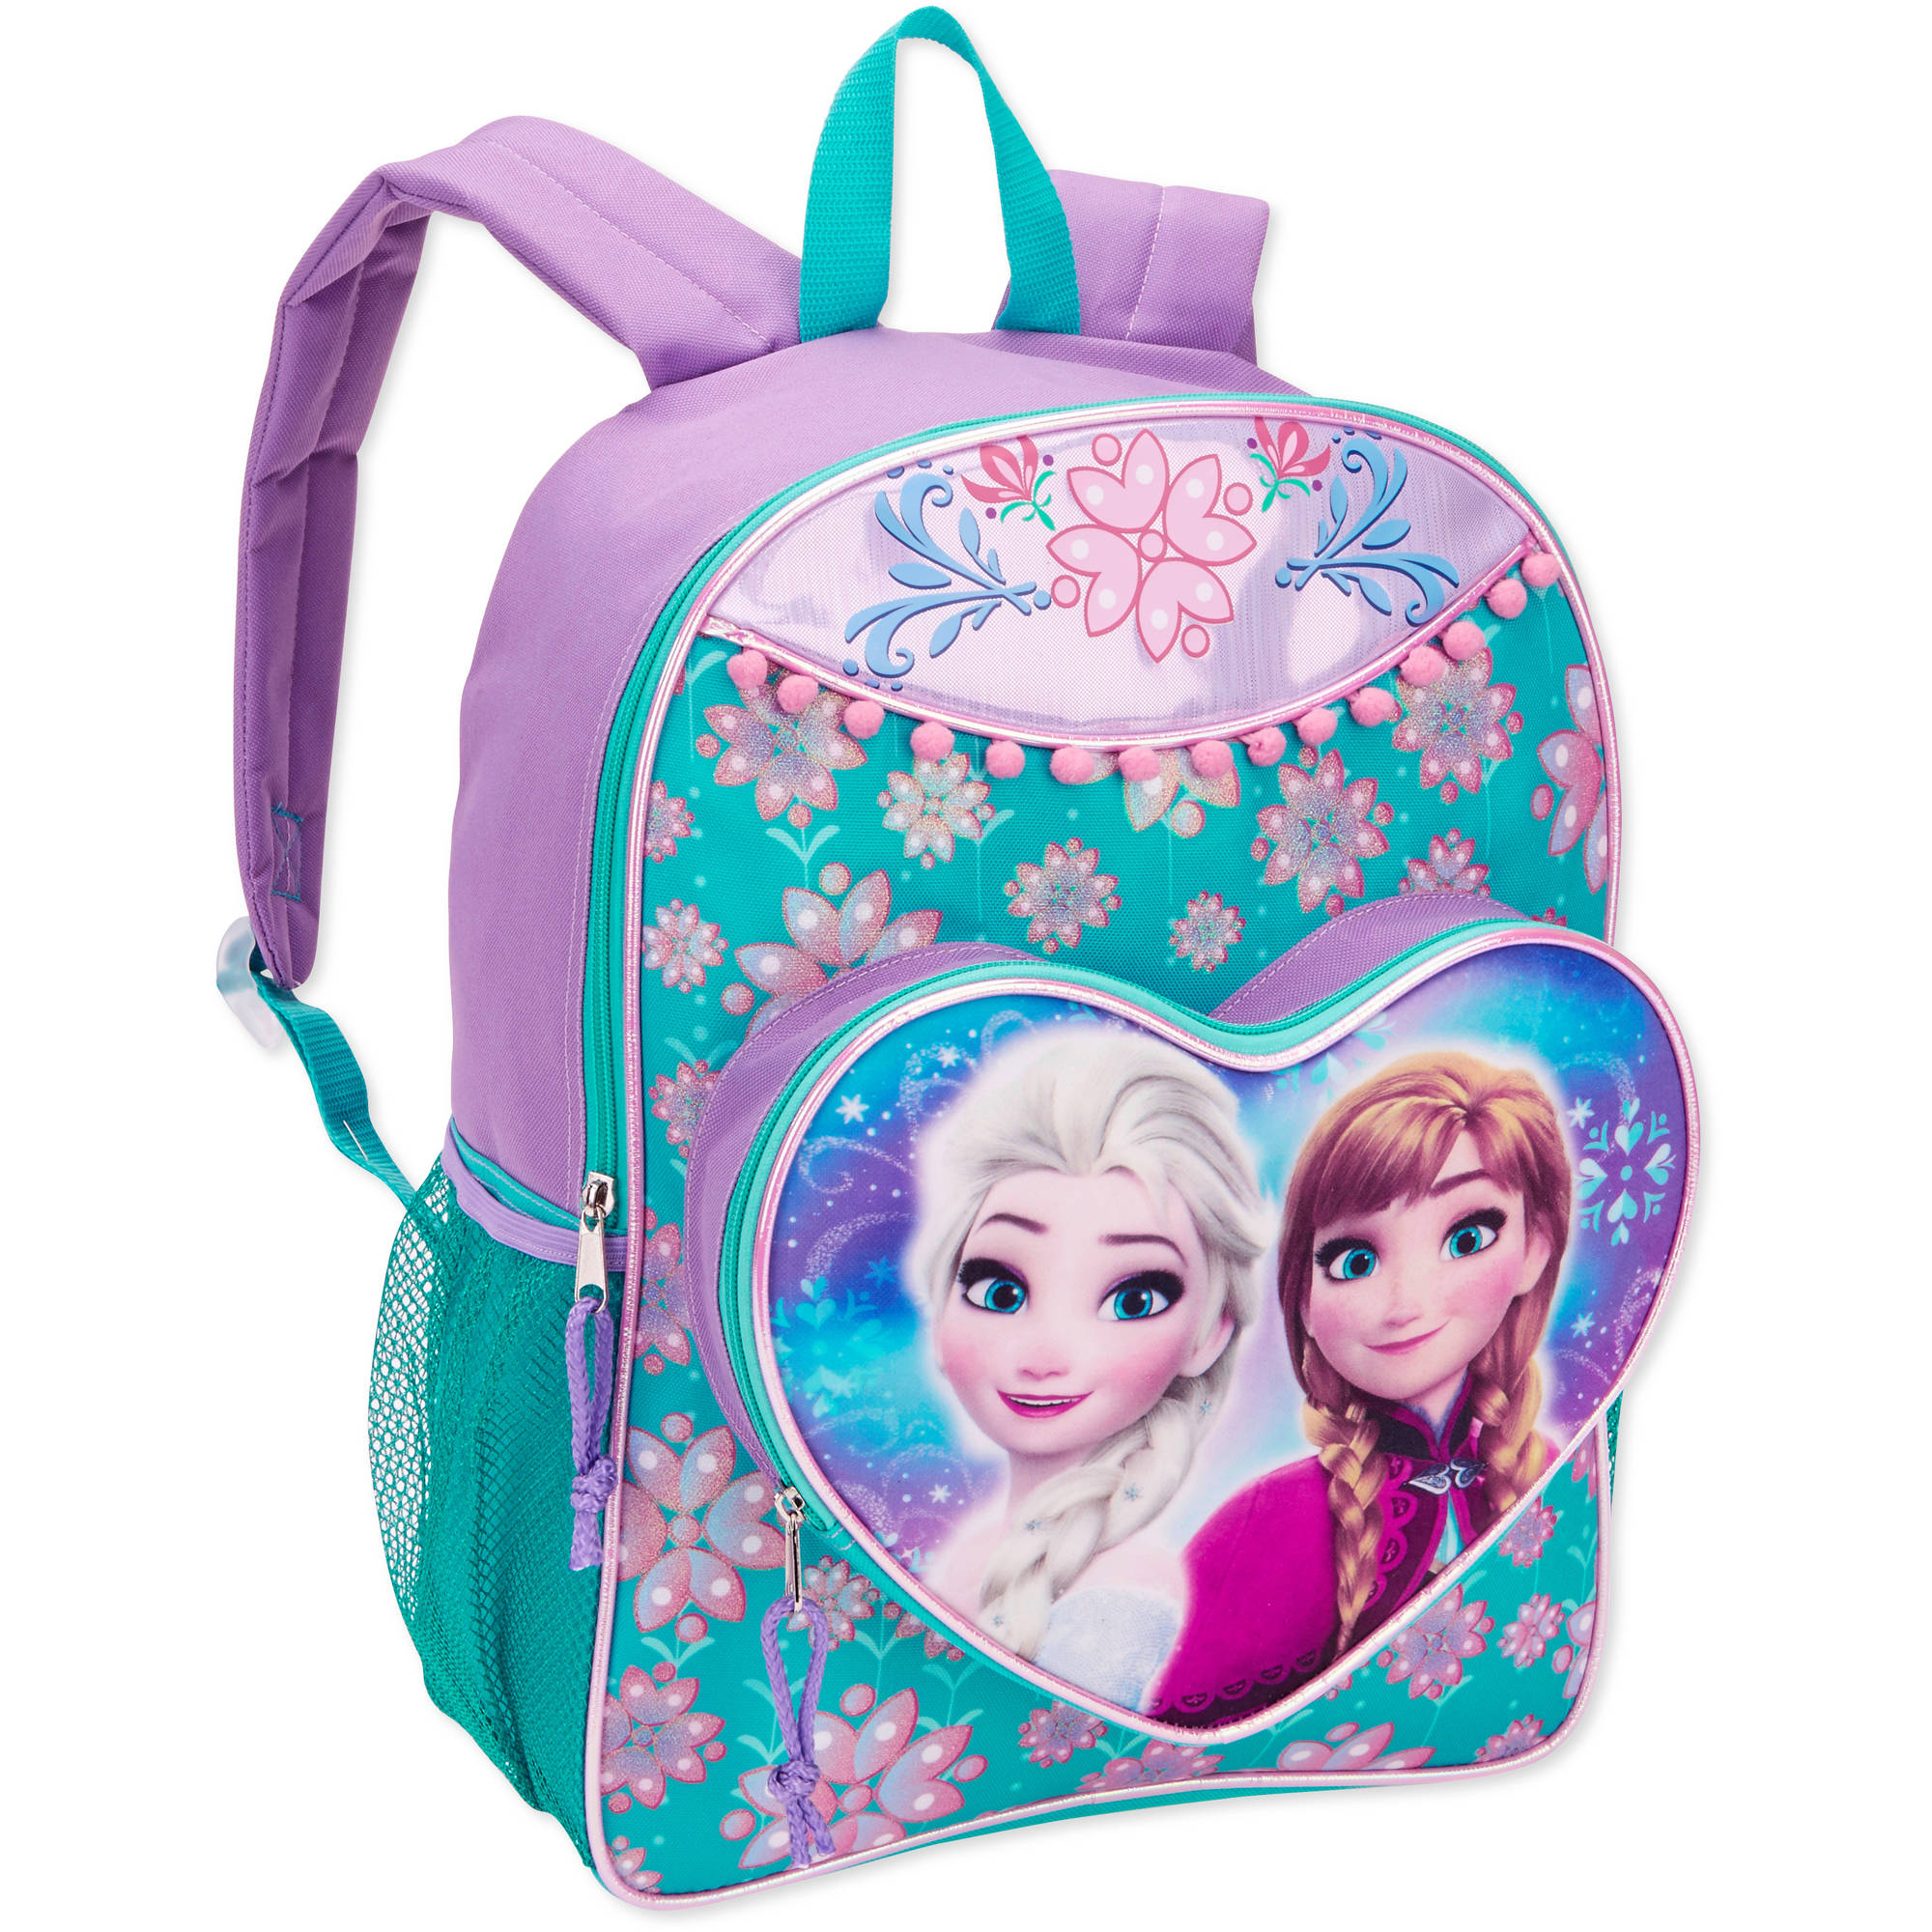 Disney Frozen Anna and Elsa Full Size 16 Inch Kids Backpack